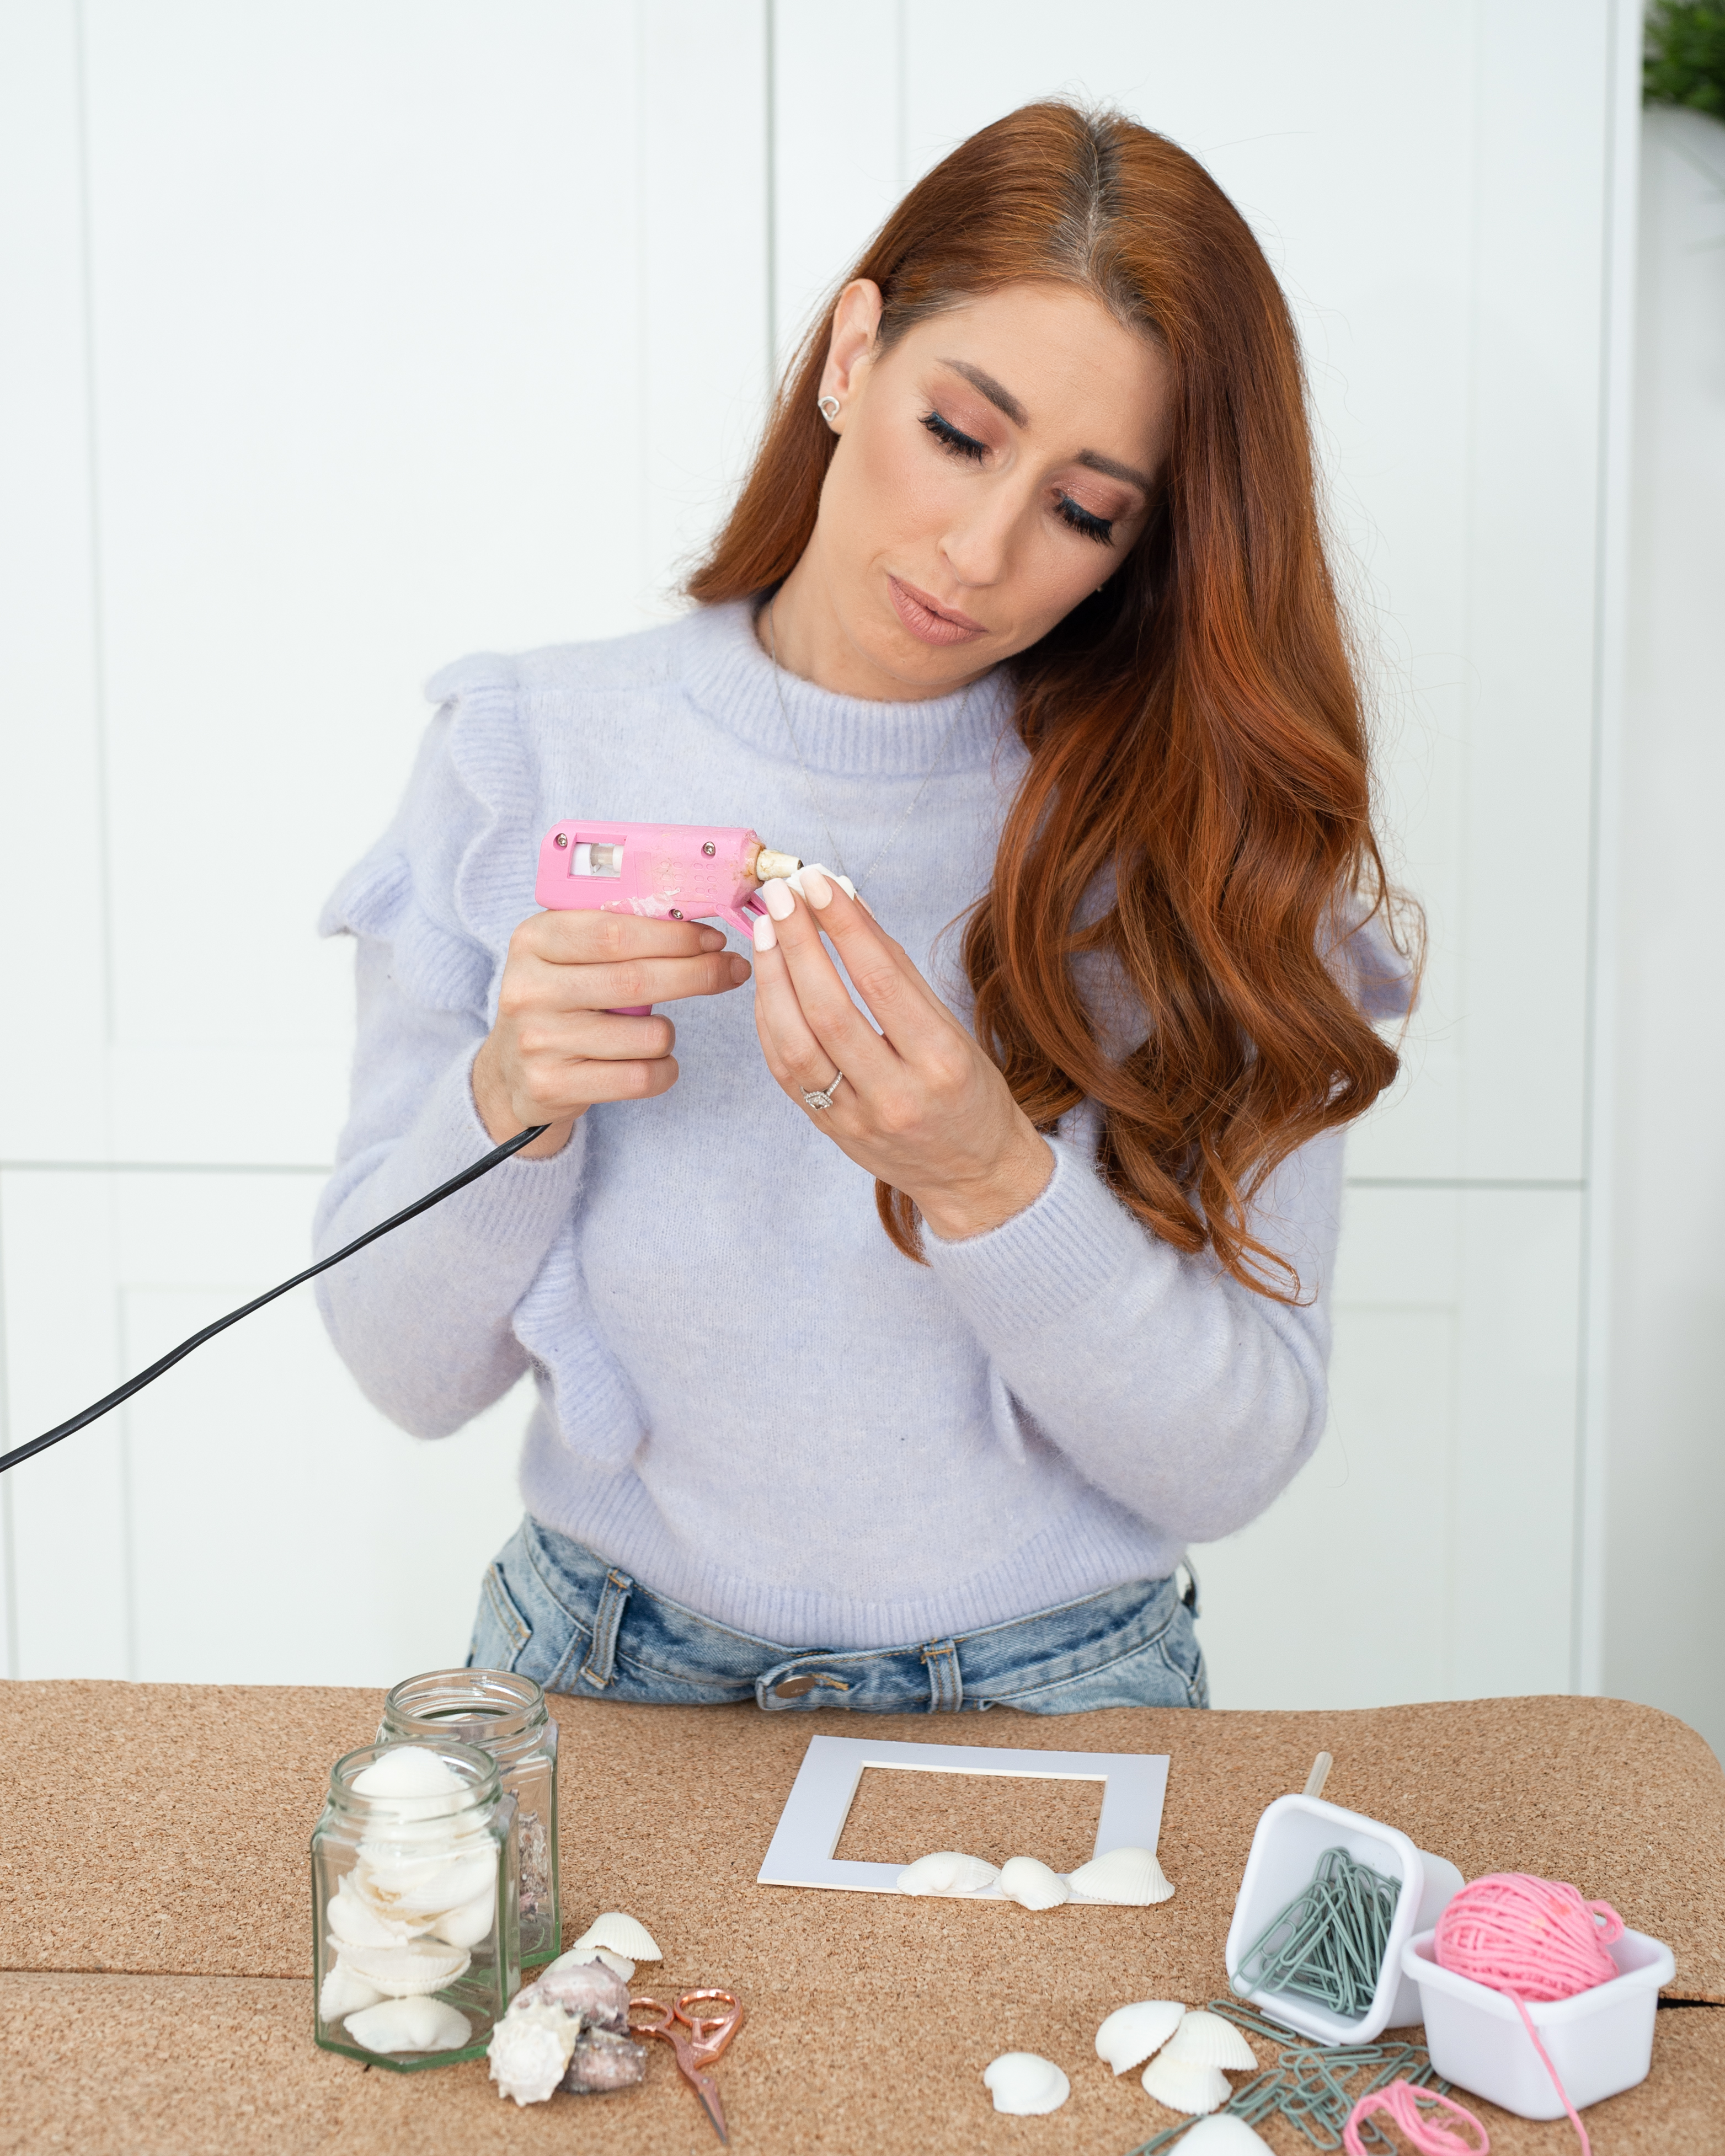 Stacey Solomon doing one of the crafting projects in her new Tap To Tidy book